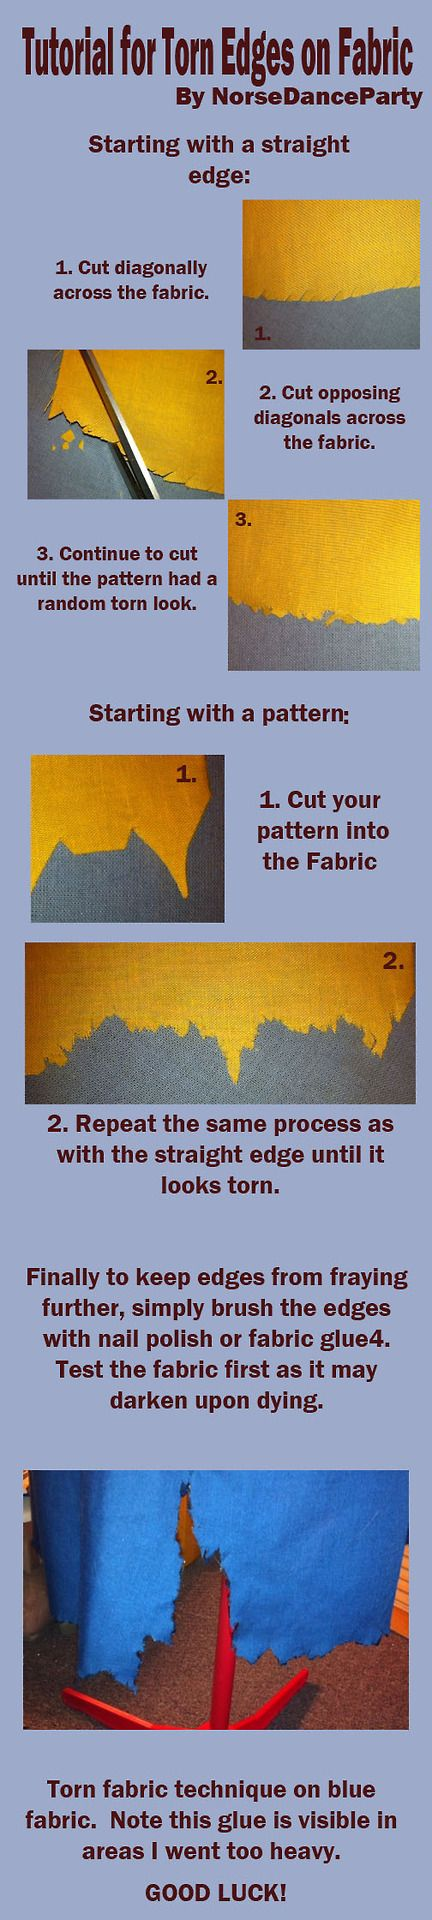 Torn Fabric Tutorial (Weathering) -http://norsedanceparty.deviantart.com/art/Torn-Fabric-Tutorial-367269016